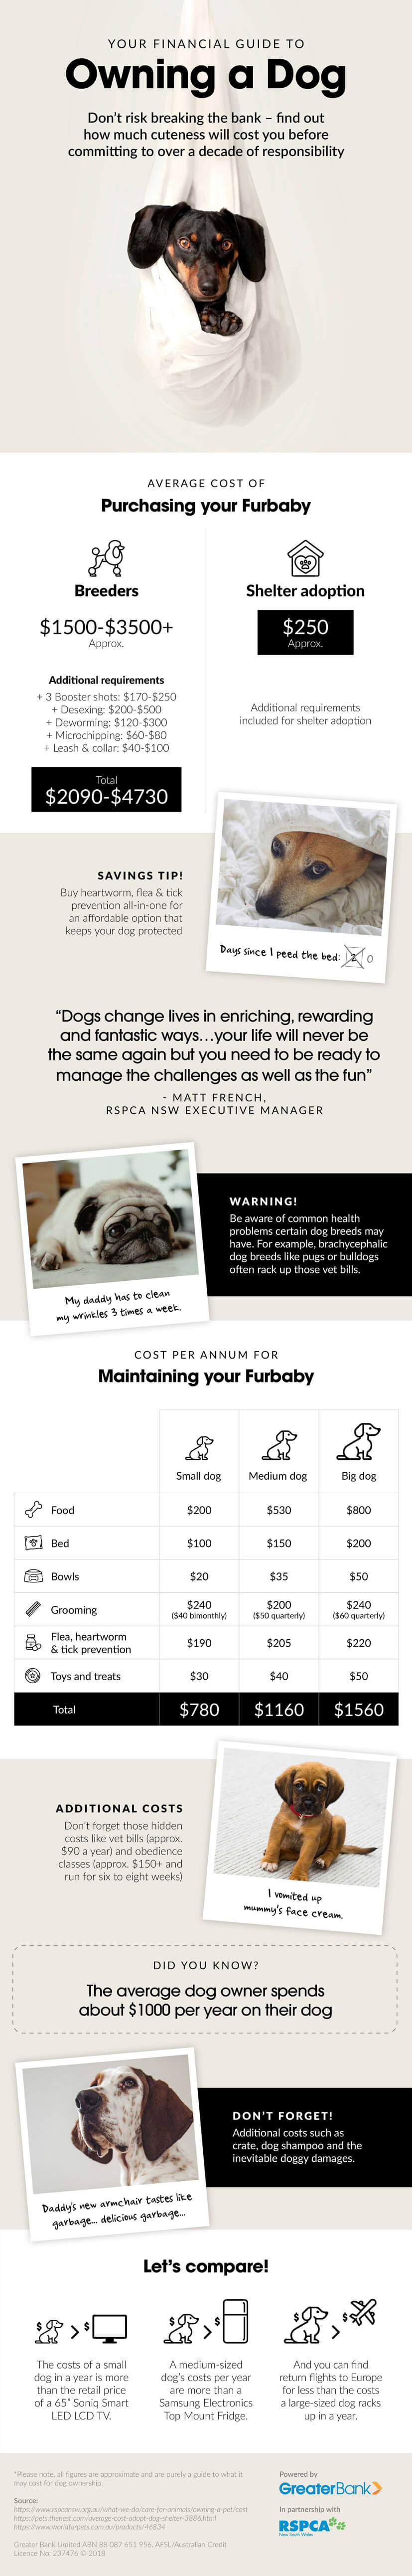 financial-guide-to-owning-a-dog-greater-bank-rspca-nsw-infographic-plaza